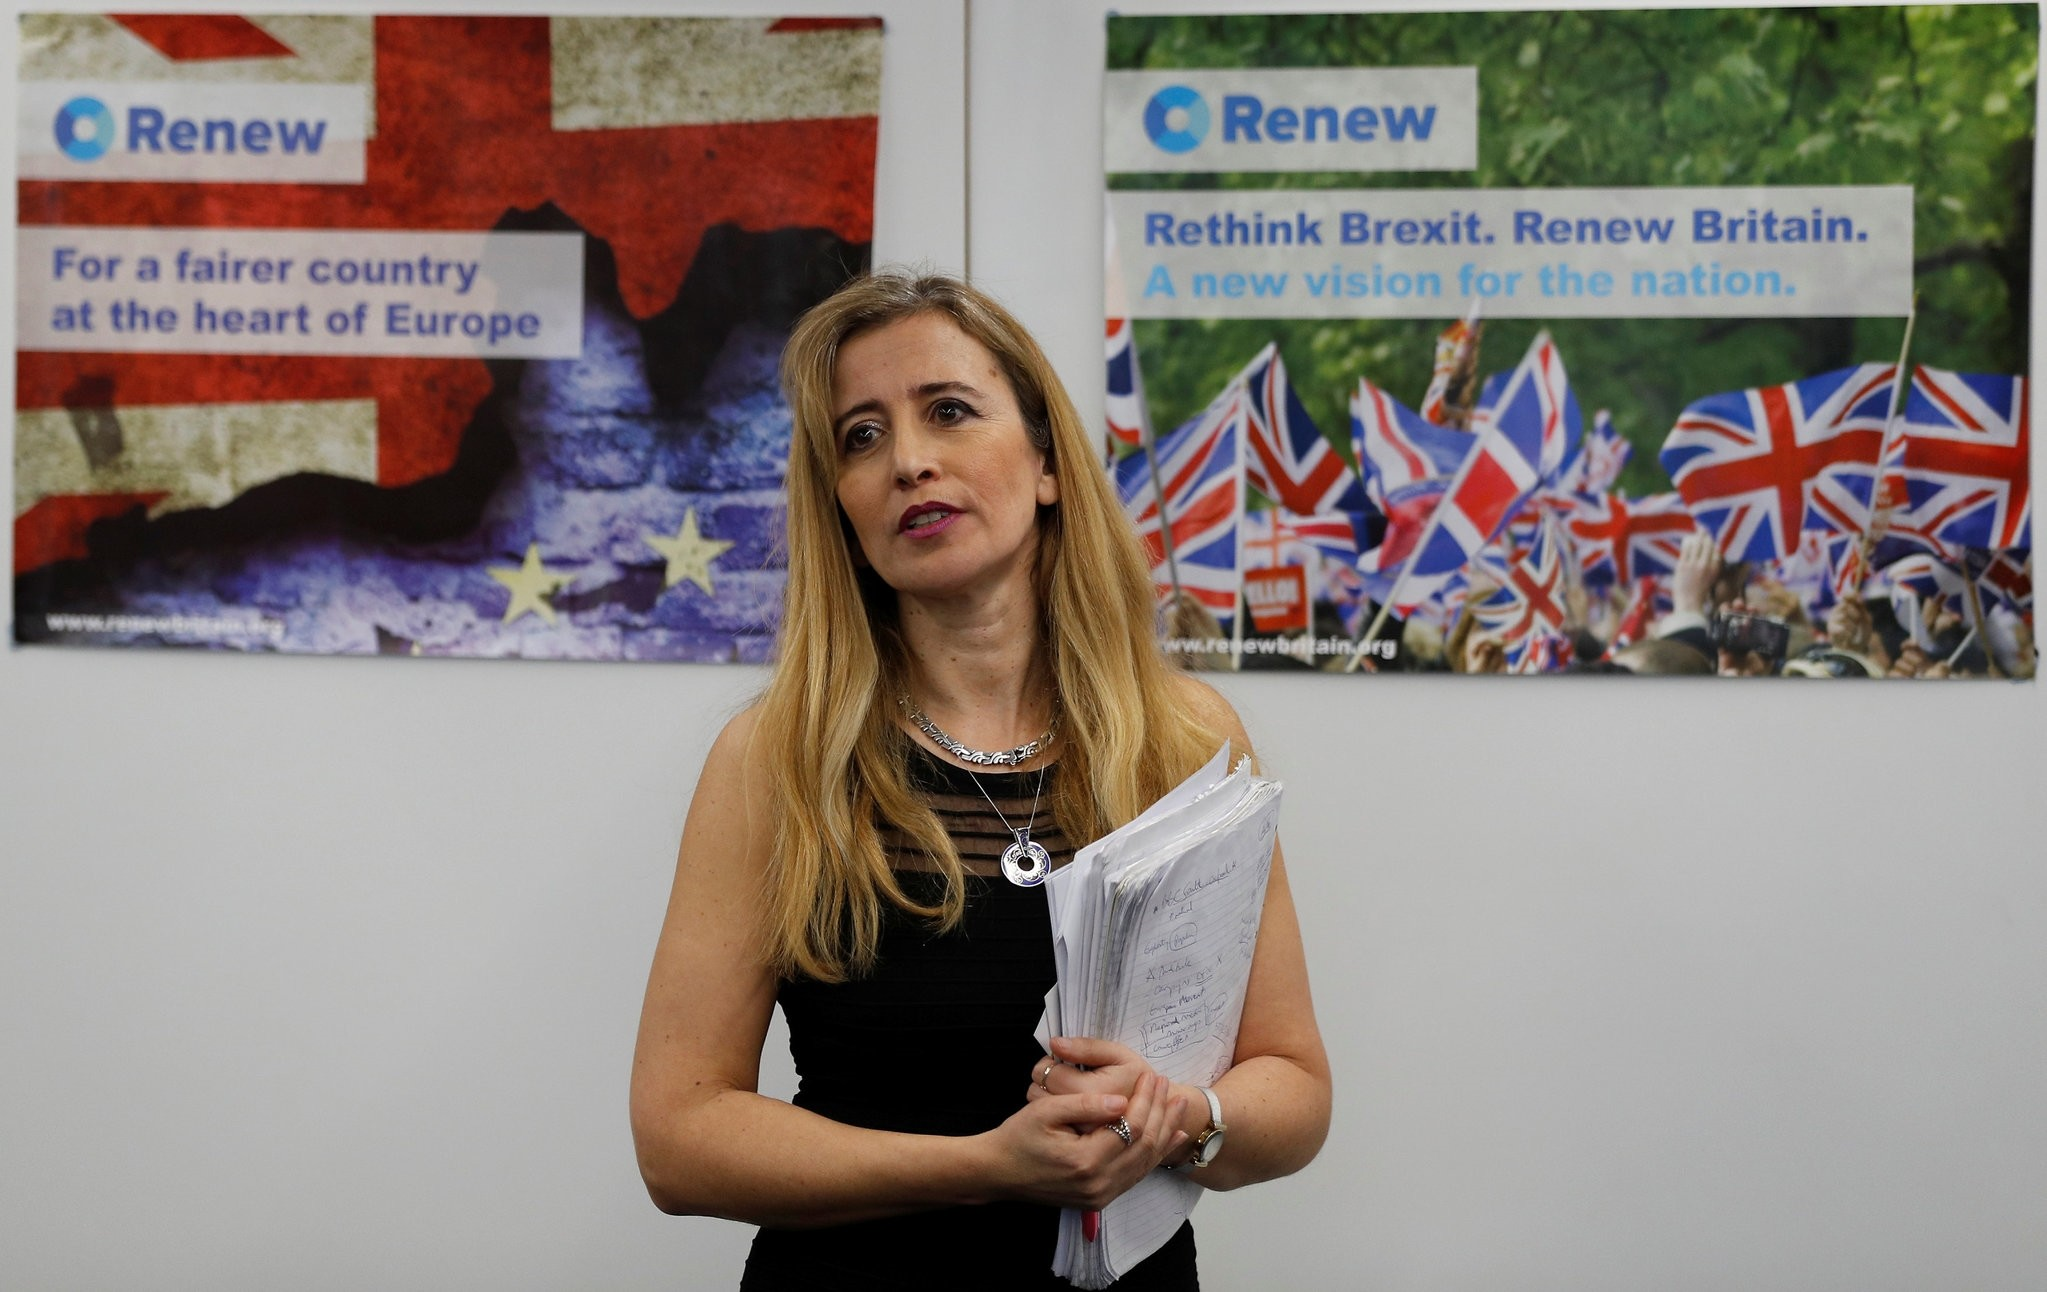 Sandra Khadhouri of Renew poses for a photograph at the launch of the new political party in London, February 19, 2018. (REUTERS Photo)